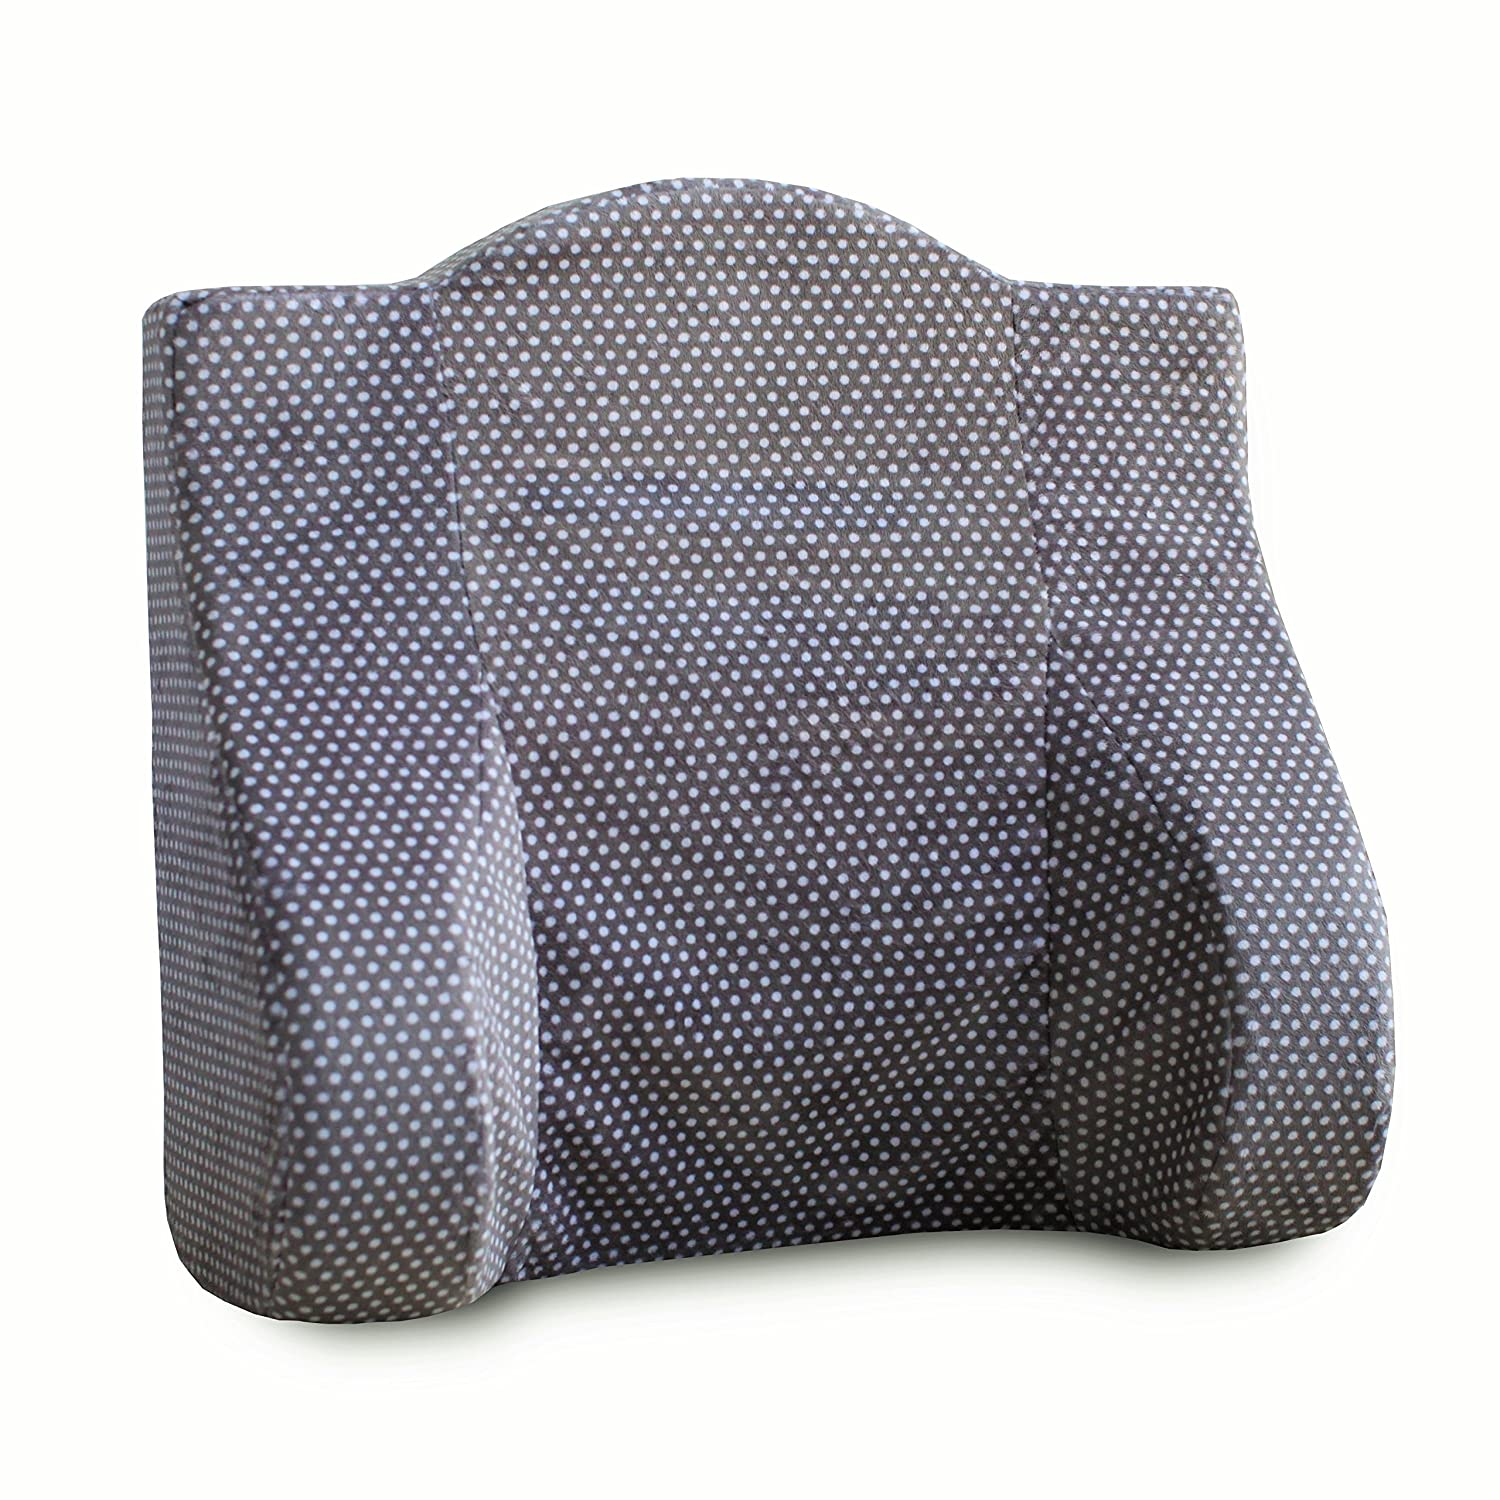 Back Buddy All In One Maternity Pillow for Nursing Breastfeeding Postpartum and Back Support Helps Relieve Lower Back Pain - Minky Hayden 62412